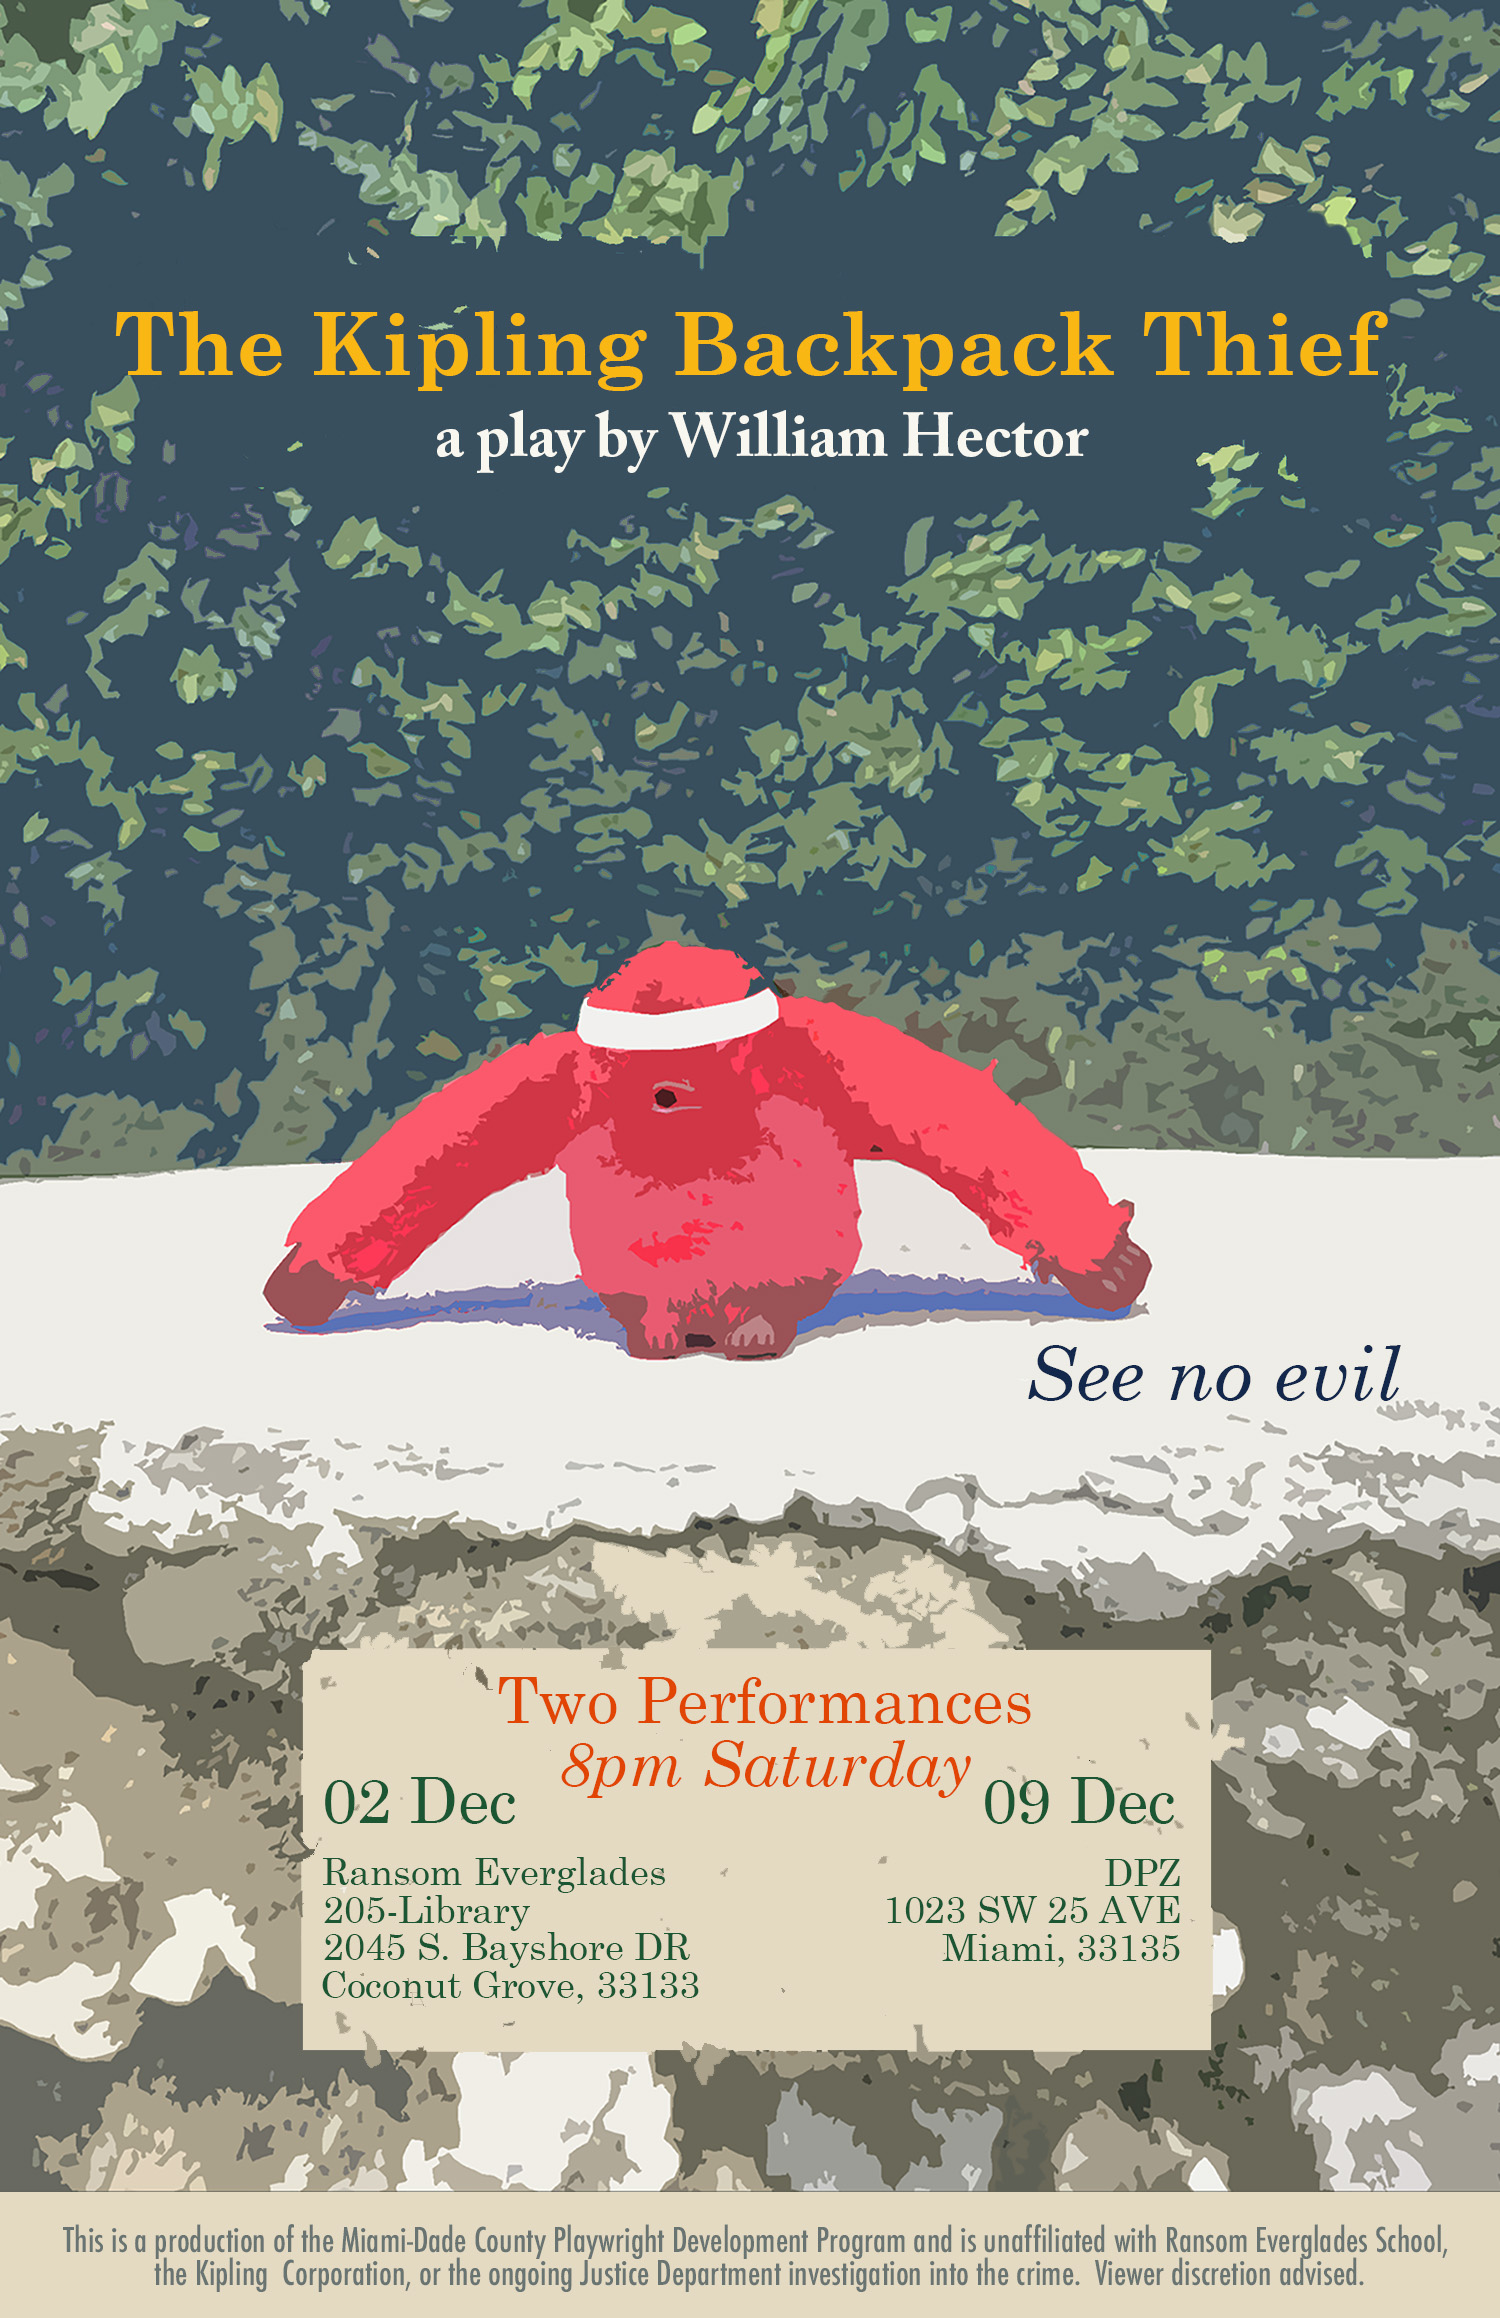 Promotional poster for the December 2nd and December 9th readings of The Kipling Backpack Thief. Poster design by Joanna Lombard.